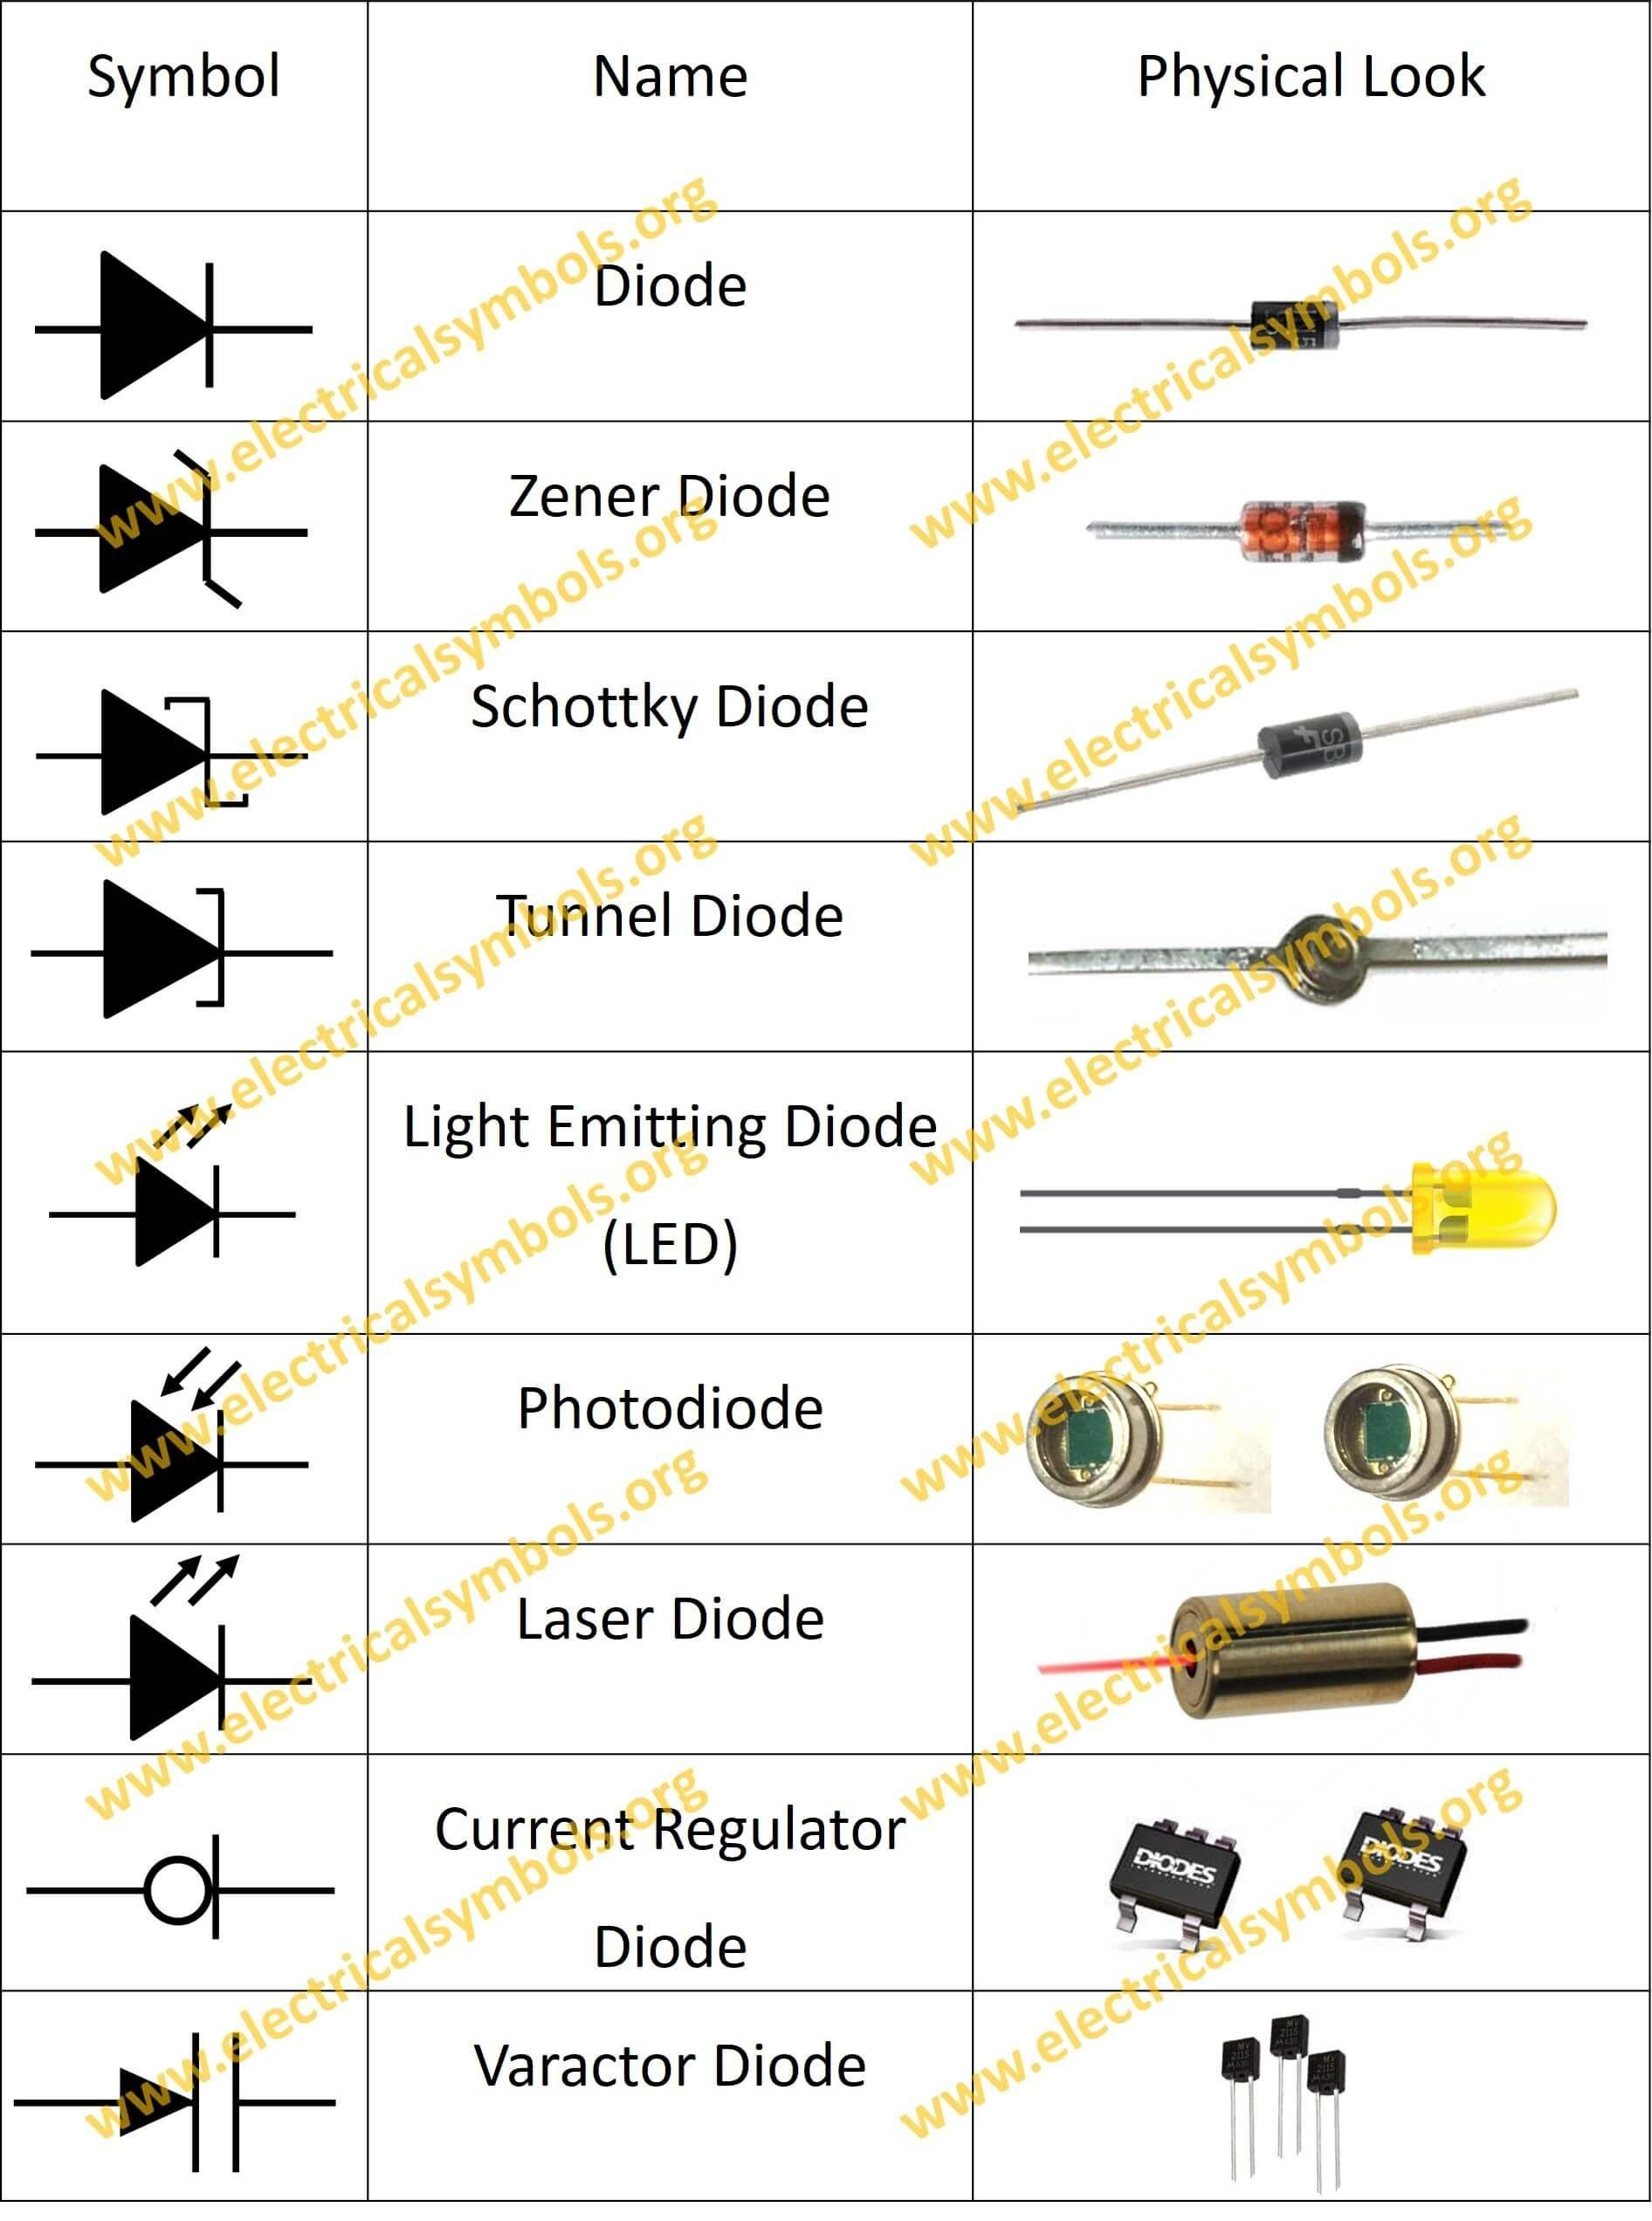 led symbol wiring diagram awesome wiring diagram diode symbol diagrams digramssample  wiring diagram diode symbol diagrams